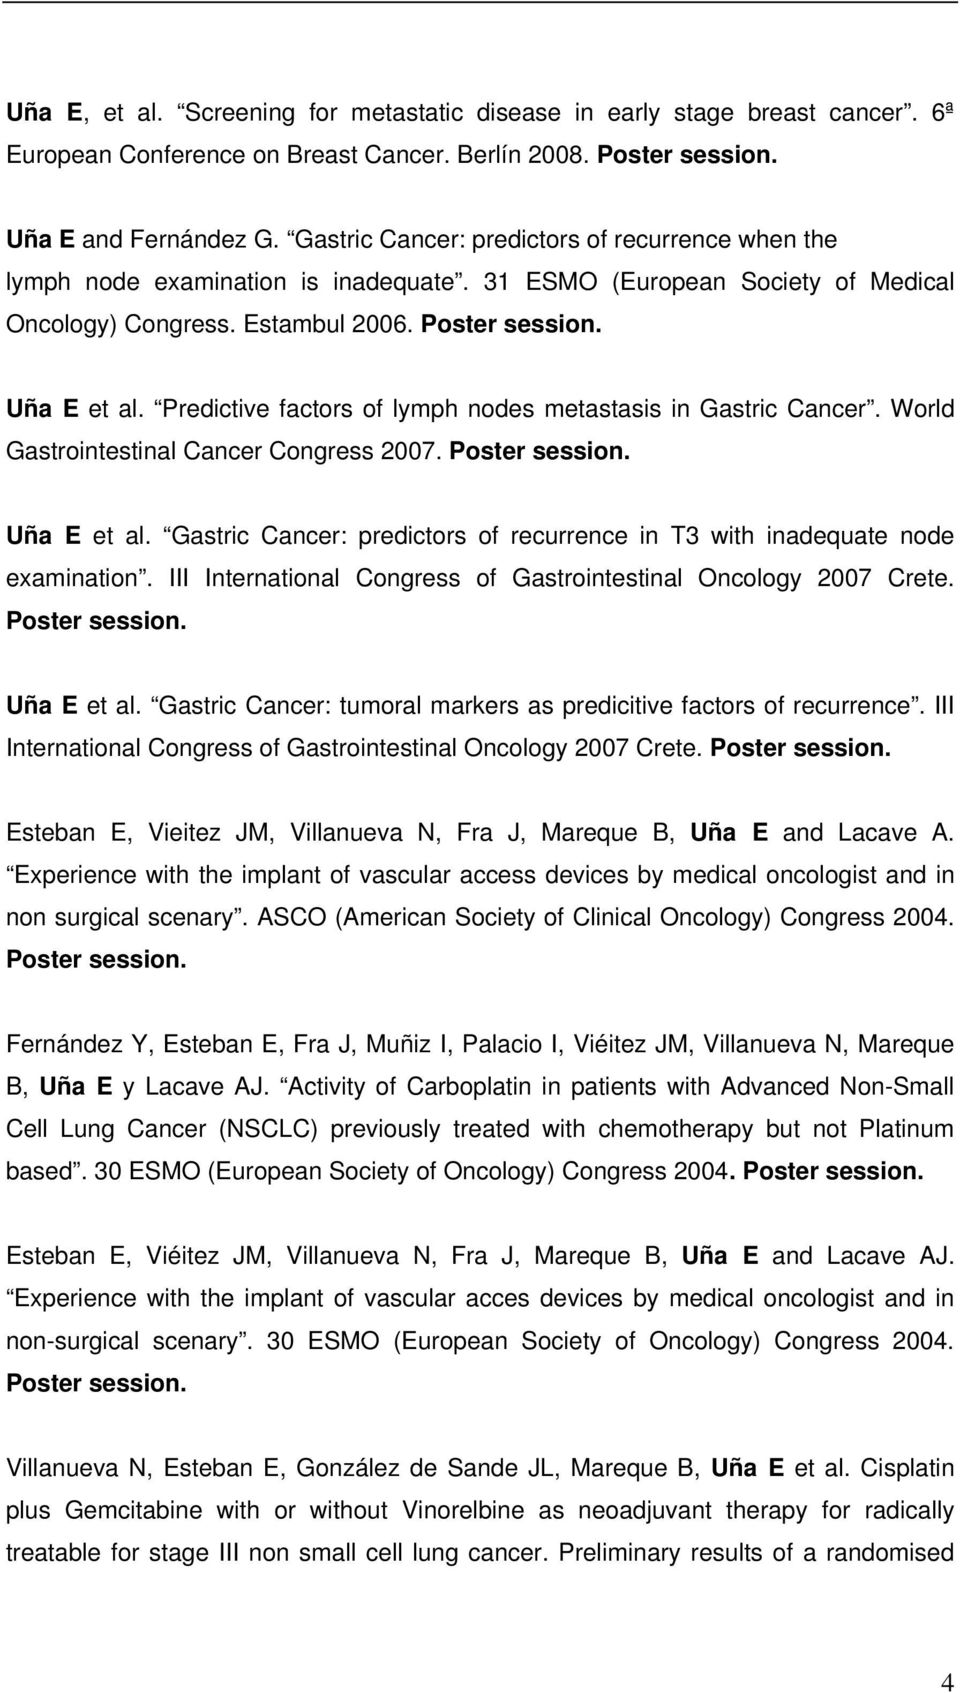 Predictive factors of lymph nodes metastasis in Gastric Cancer. World Gastrointestinal Cancer Congress 2007. Poster session. Uña E et al.